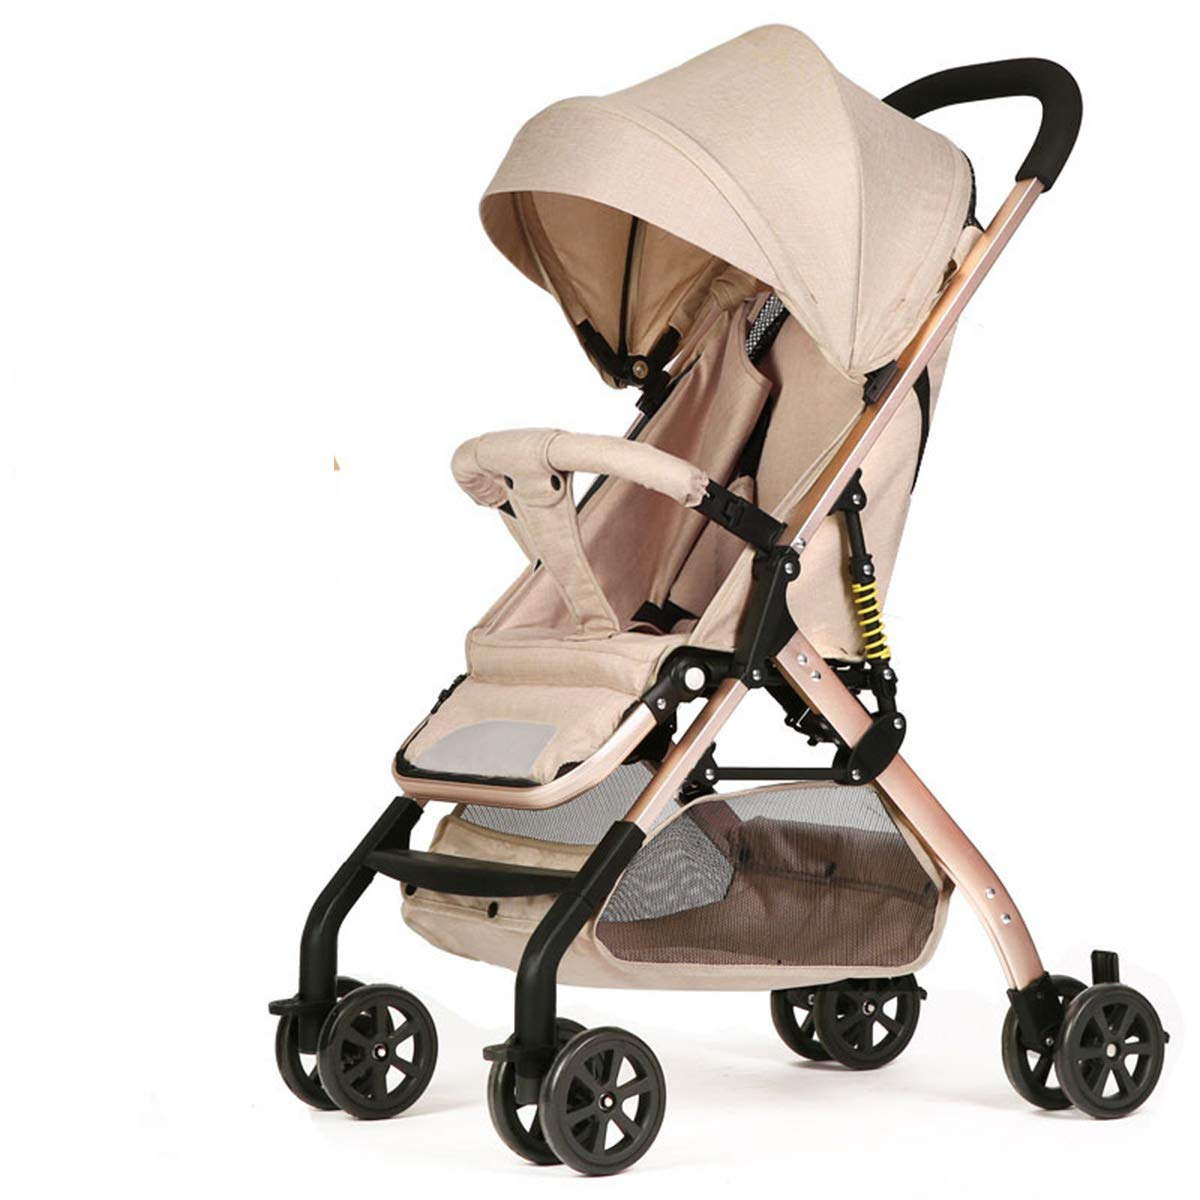 Foldable Travel Pushchair Airplane Baby Infant Stroller Carriage Aluminum Alloy